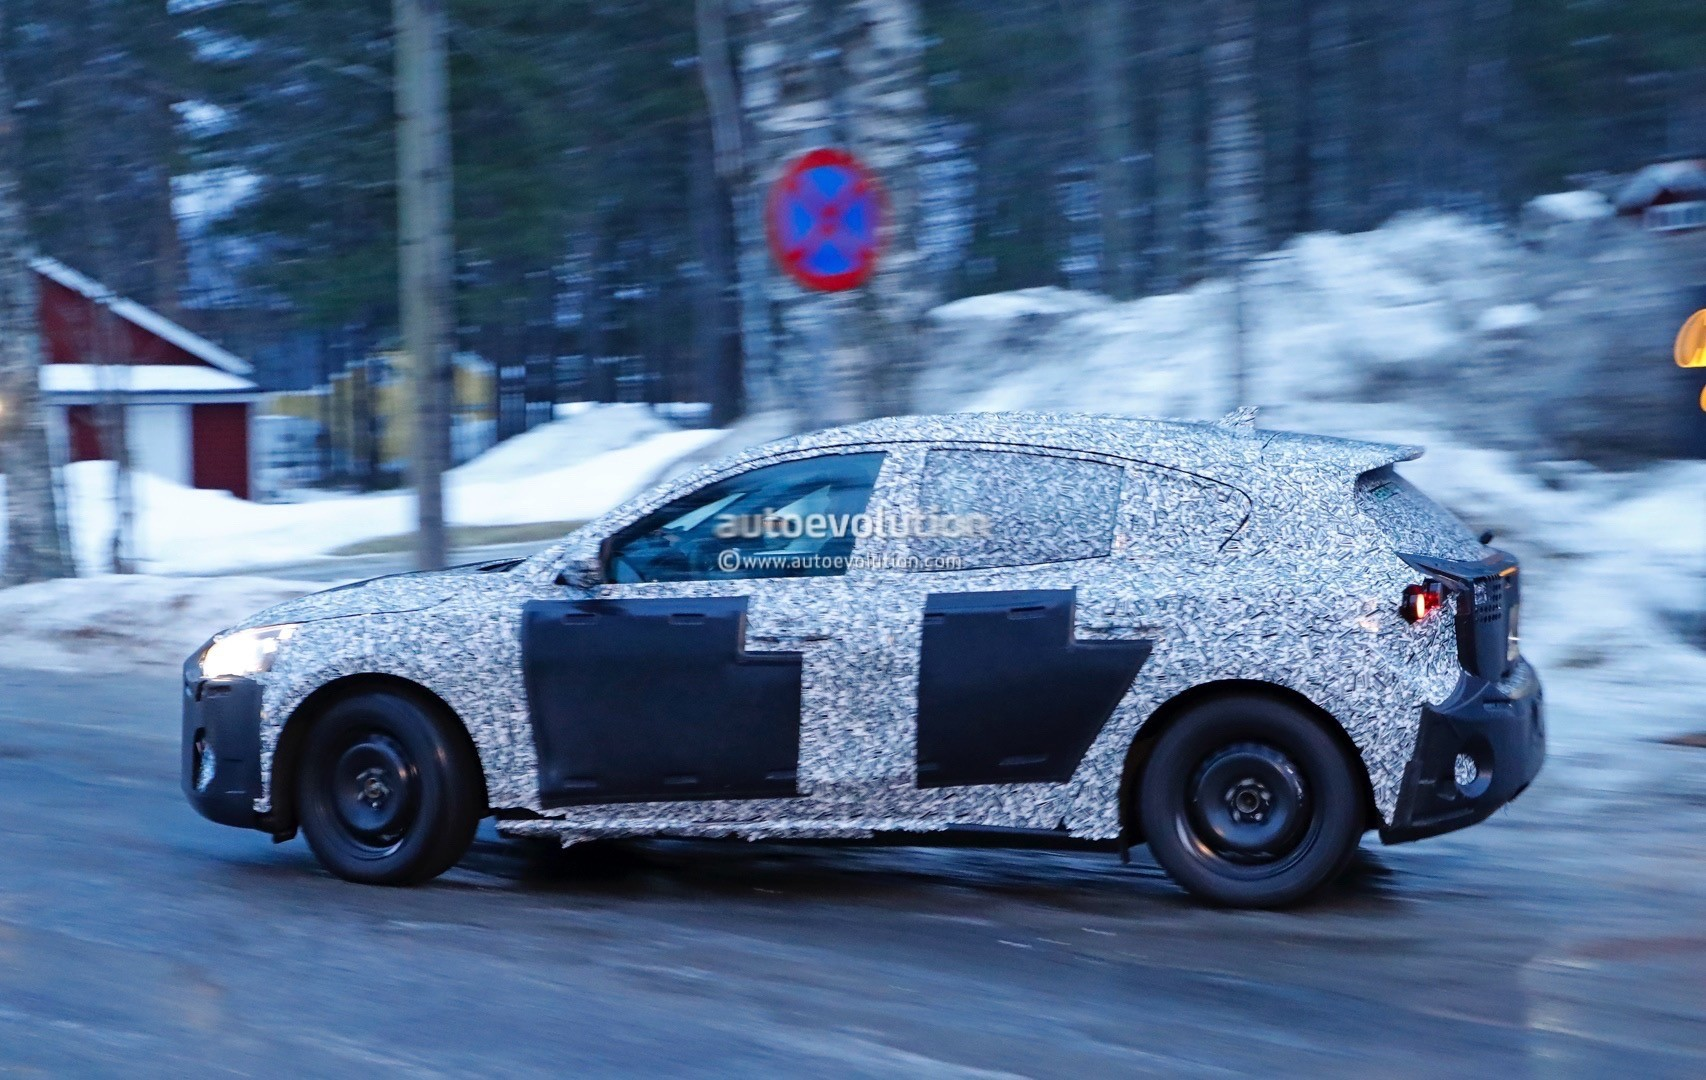 2018 Ford Focus (Mk4) Spied Wearing Production Body Shell - autoevolution